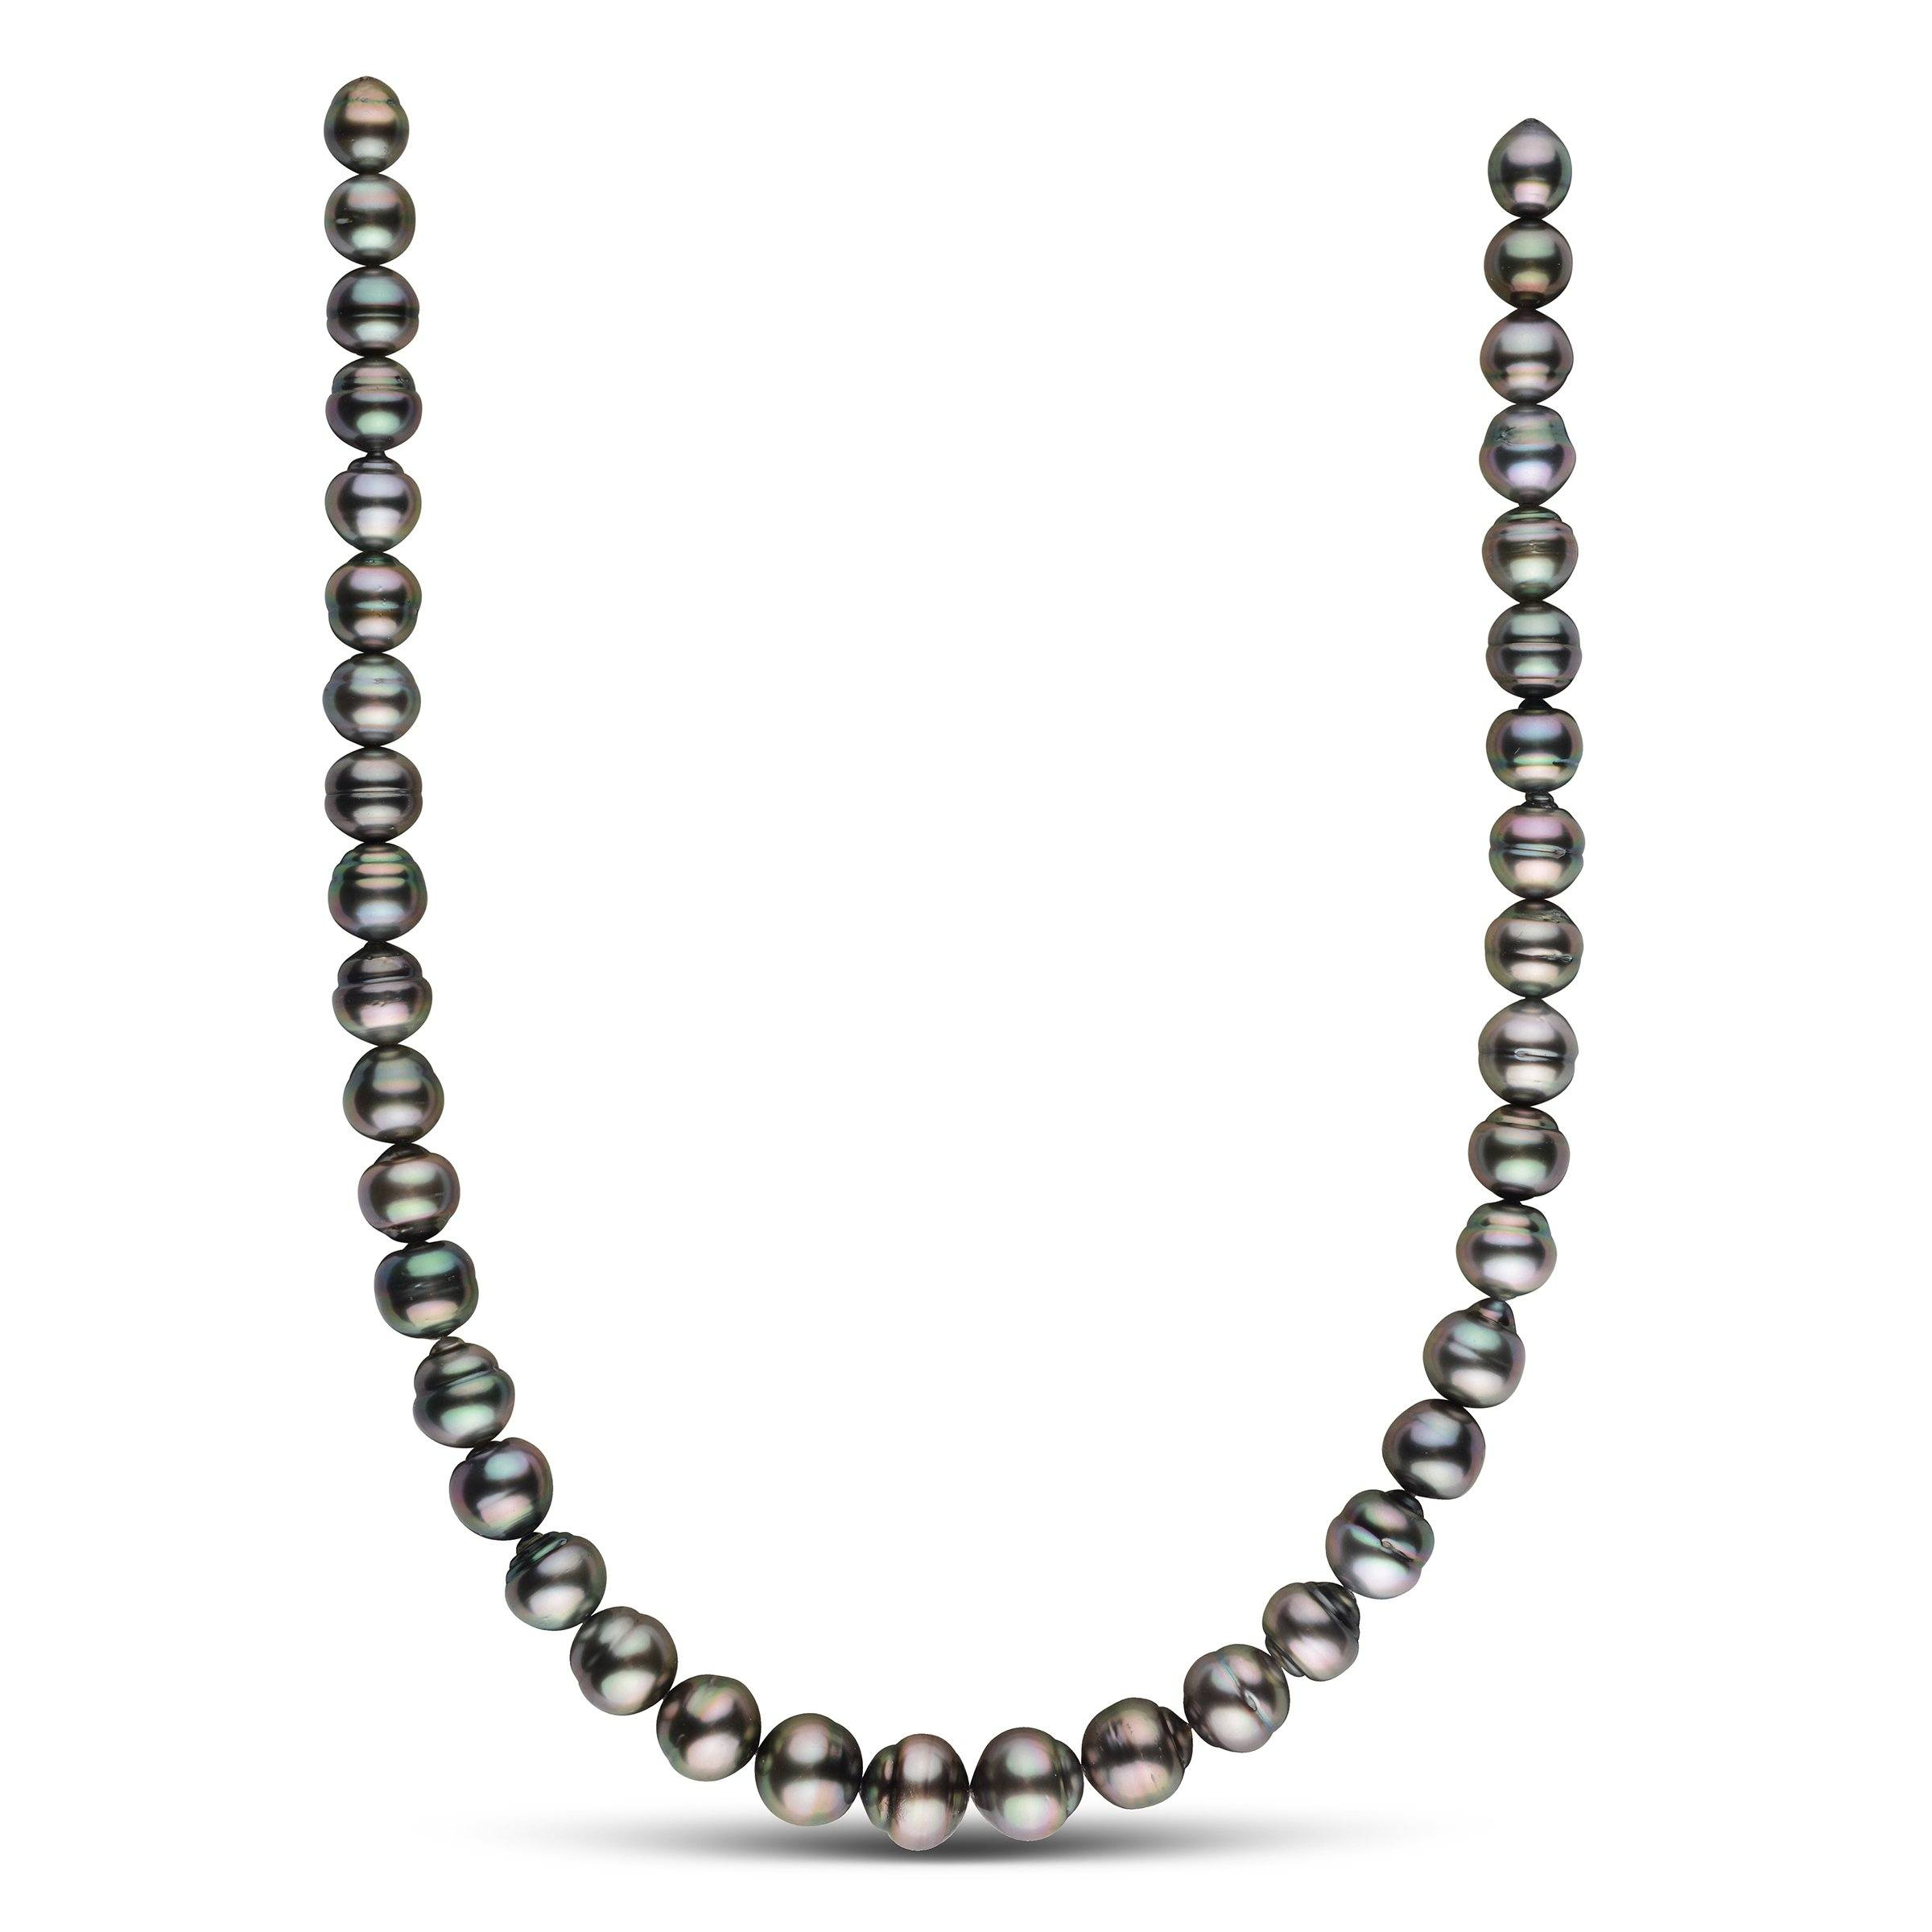 9.0-12.0 mm AA+/AAA Tahitian Baroque Pearl Necklace